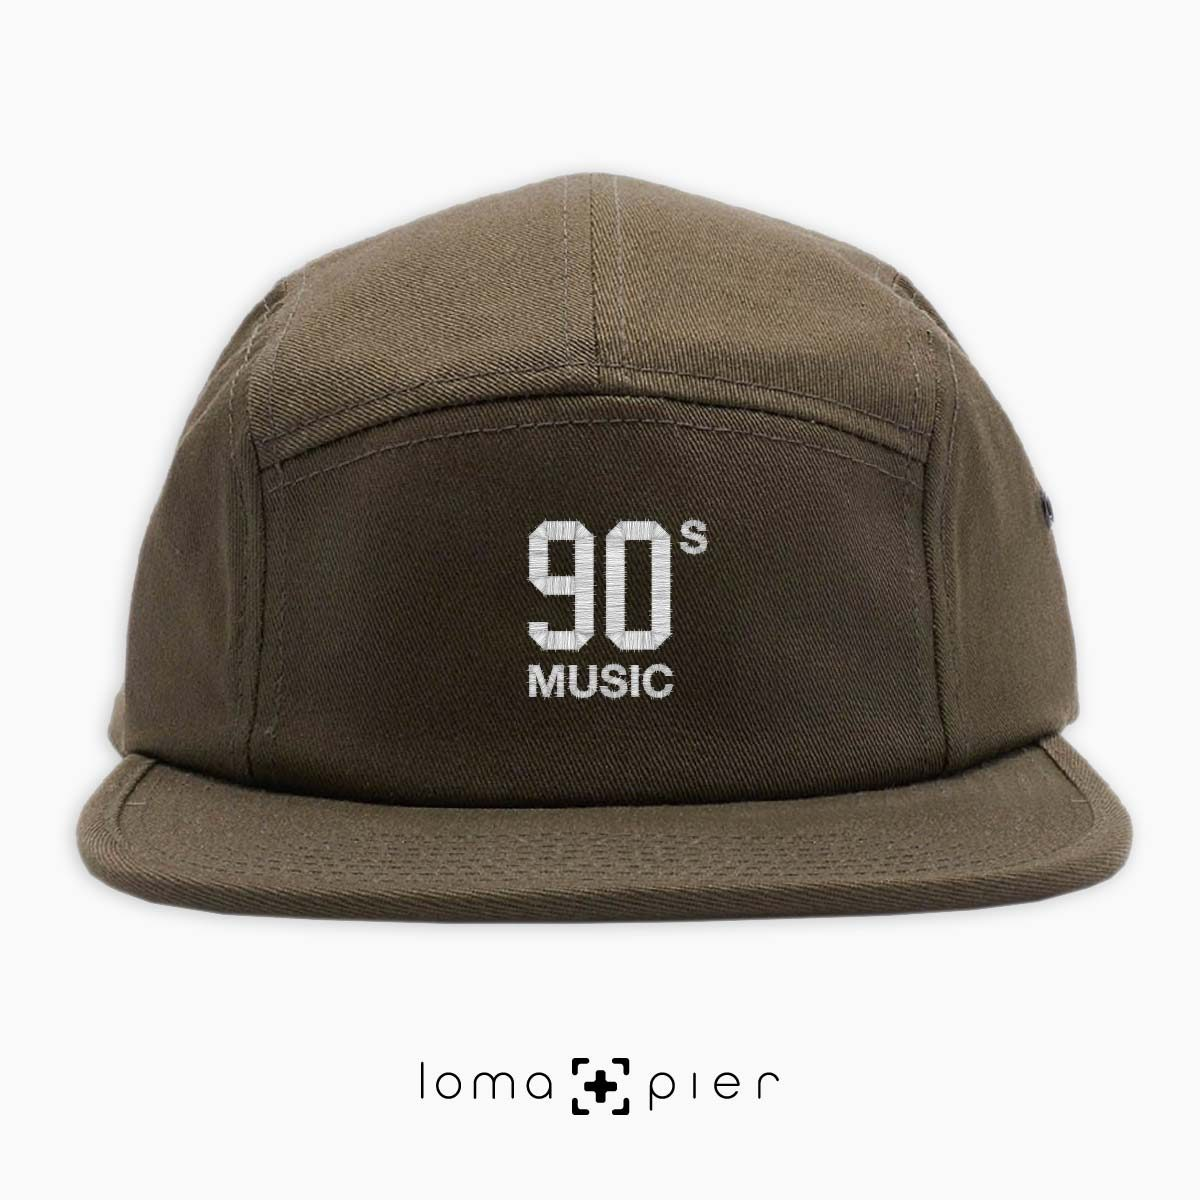 90's MUSIC typography embroidered on an olive green cotton 5-panel hat with white thread by loma+pier hat store